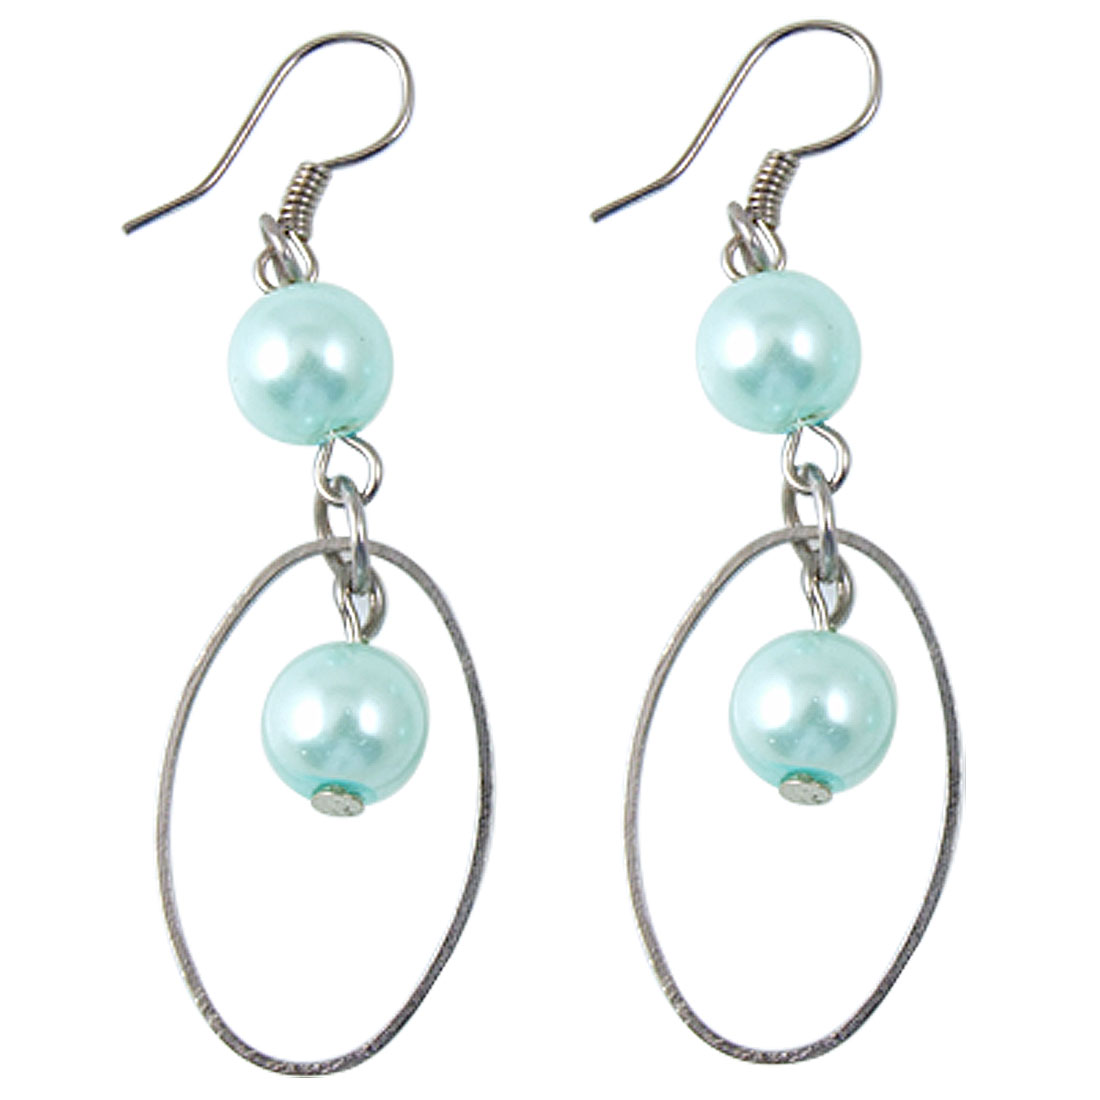 Ladies Baby Blue Beads Matal Oval Pendant Dangling Hook Earrings